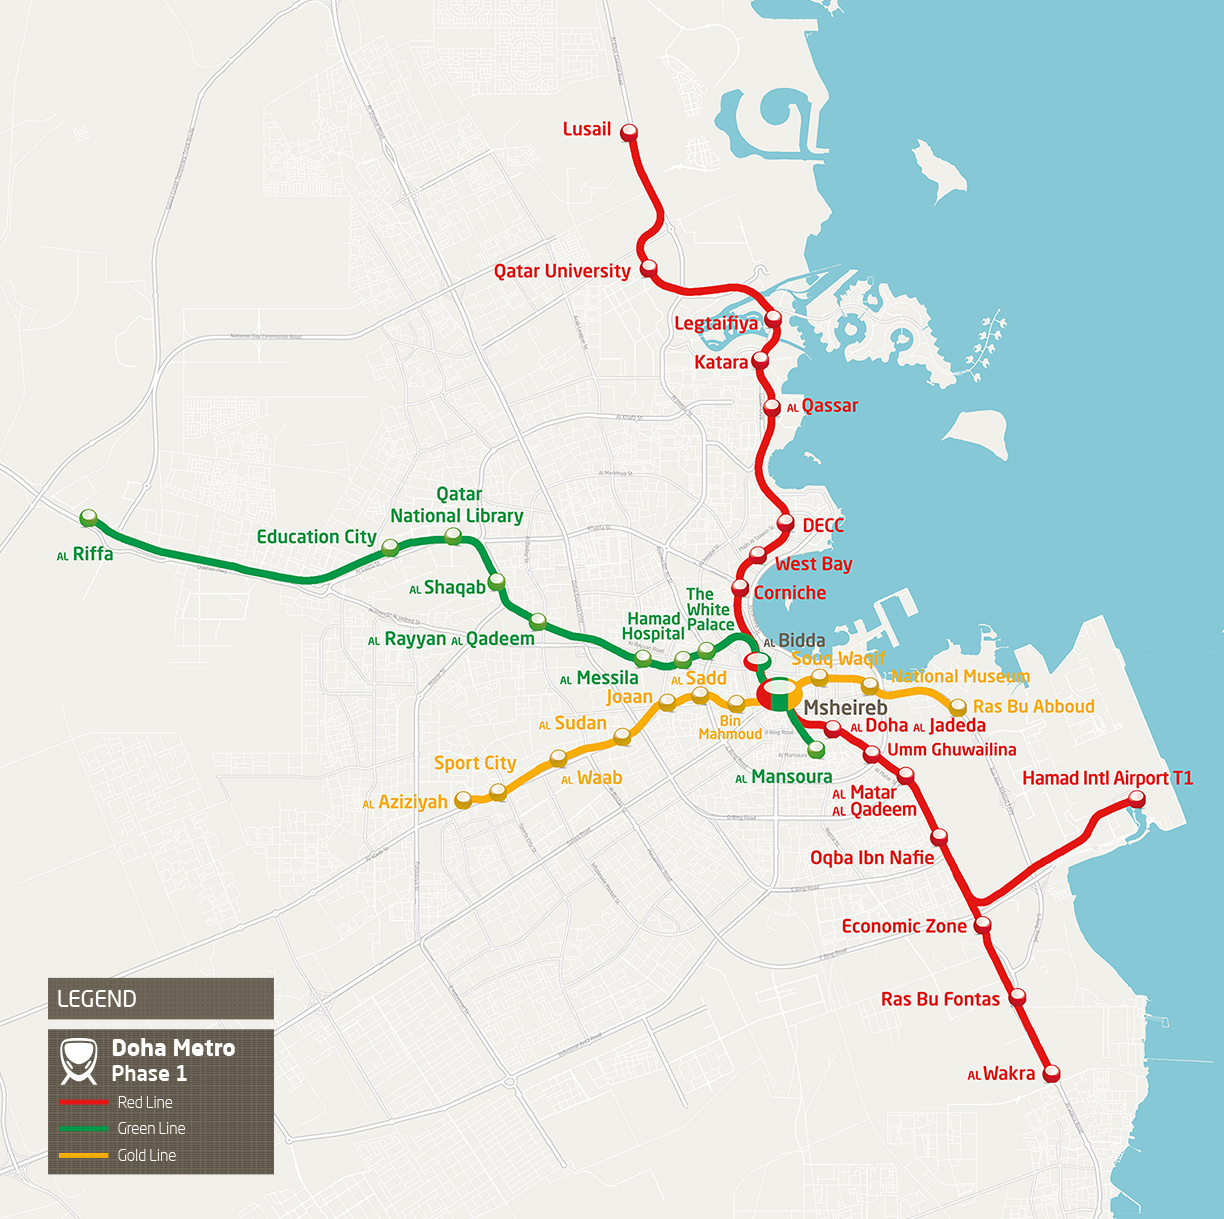 Green Start Web Page Site Map: Doha Metro